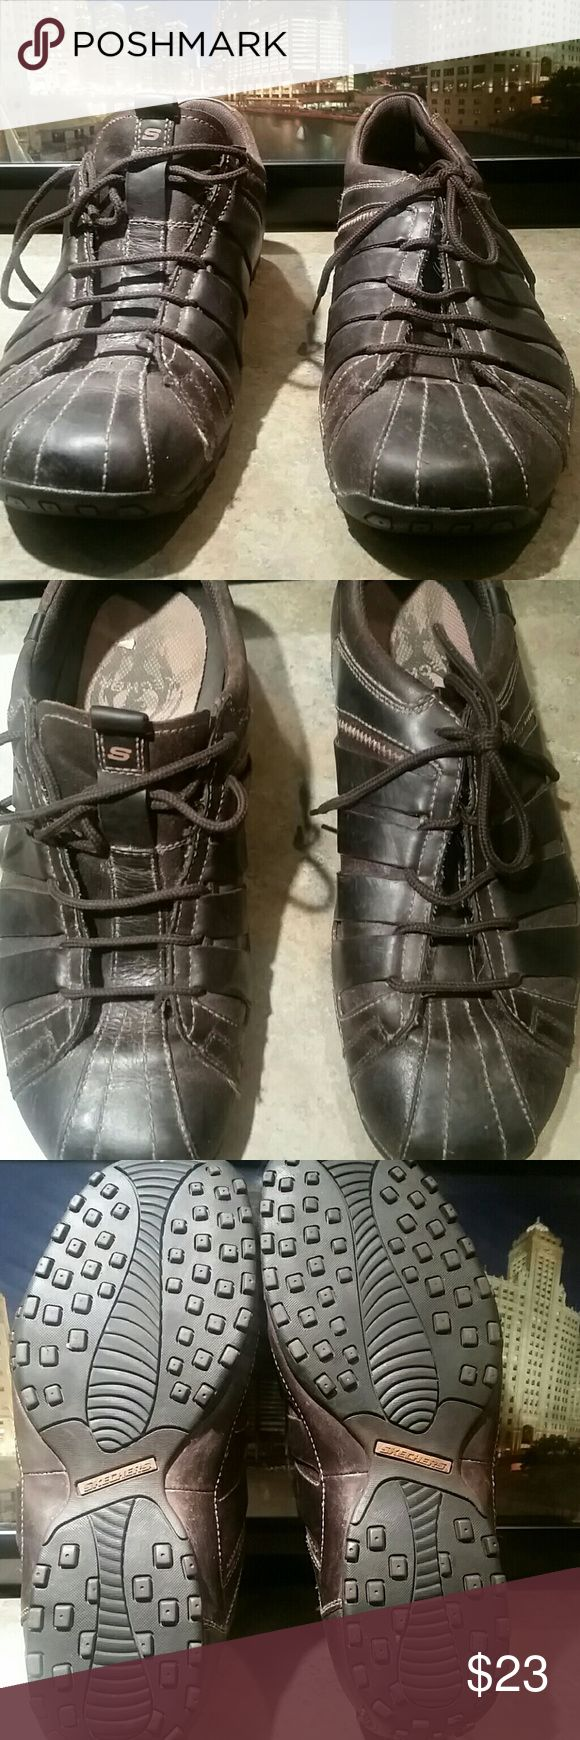 sketchers brown athletic casual shoes size 13